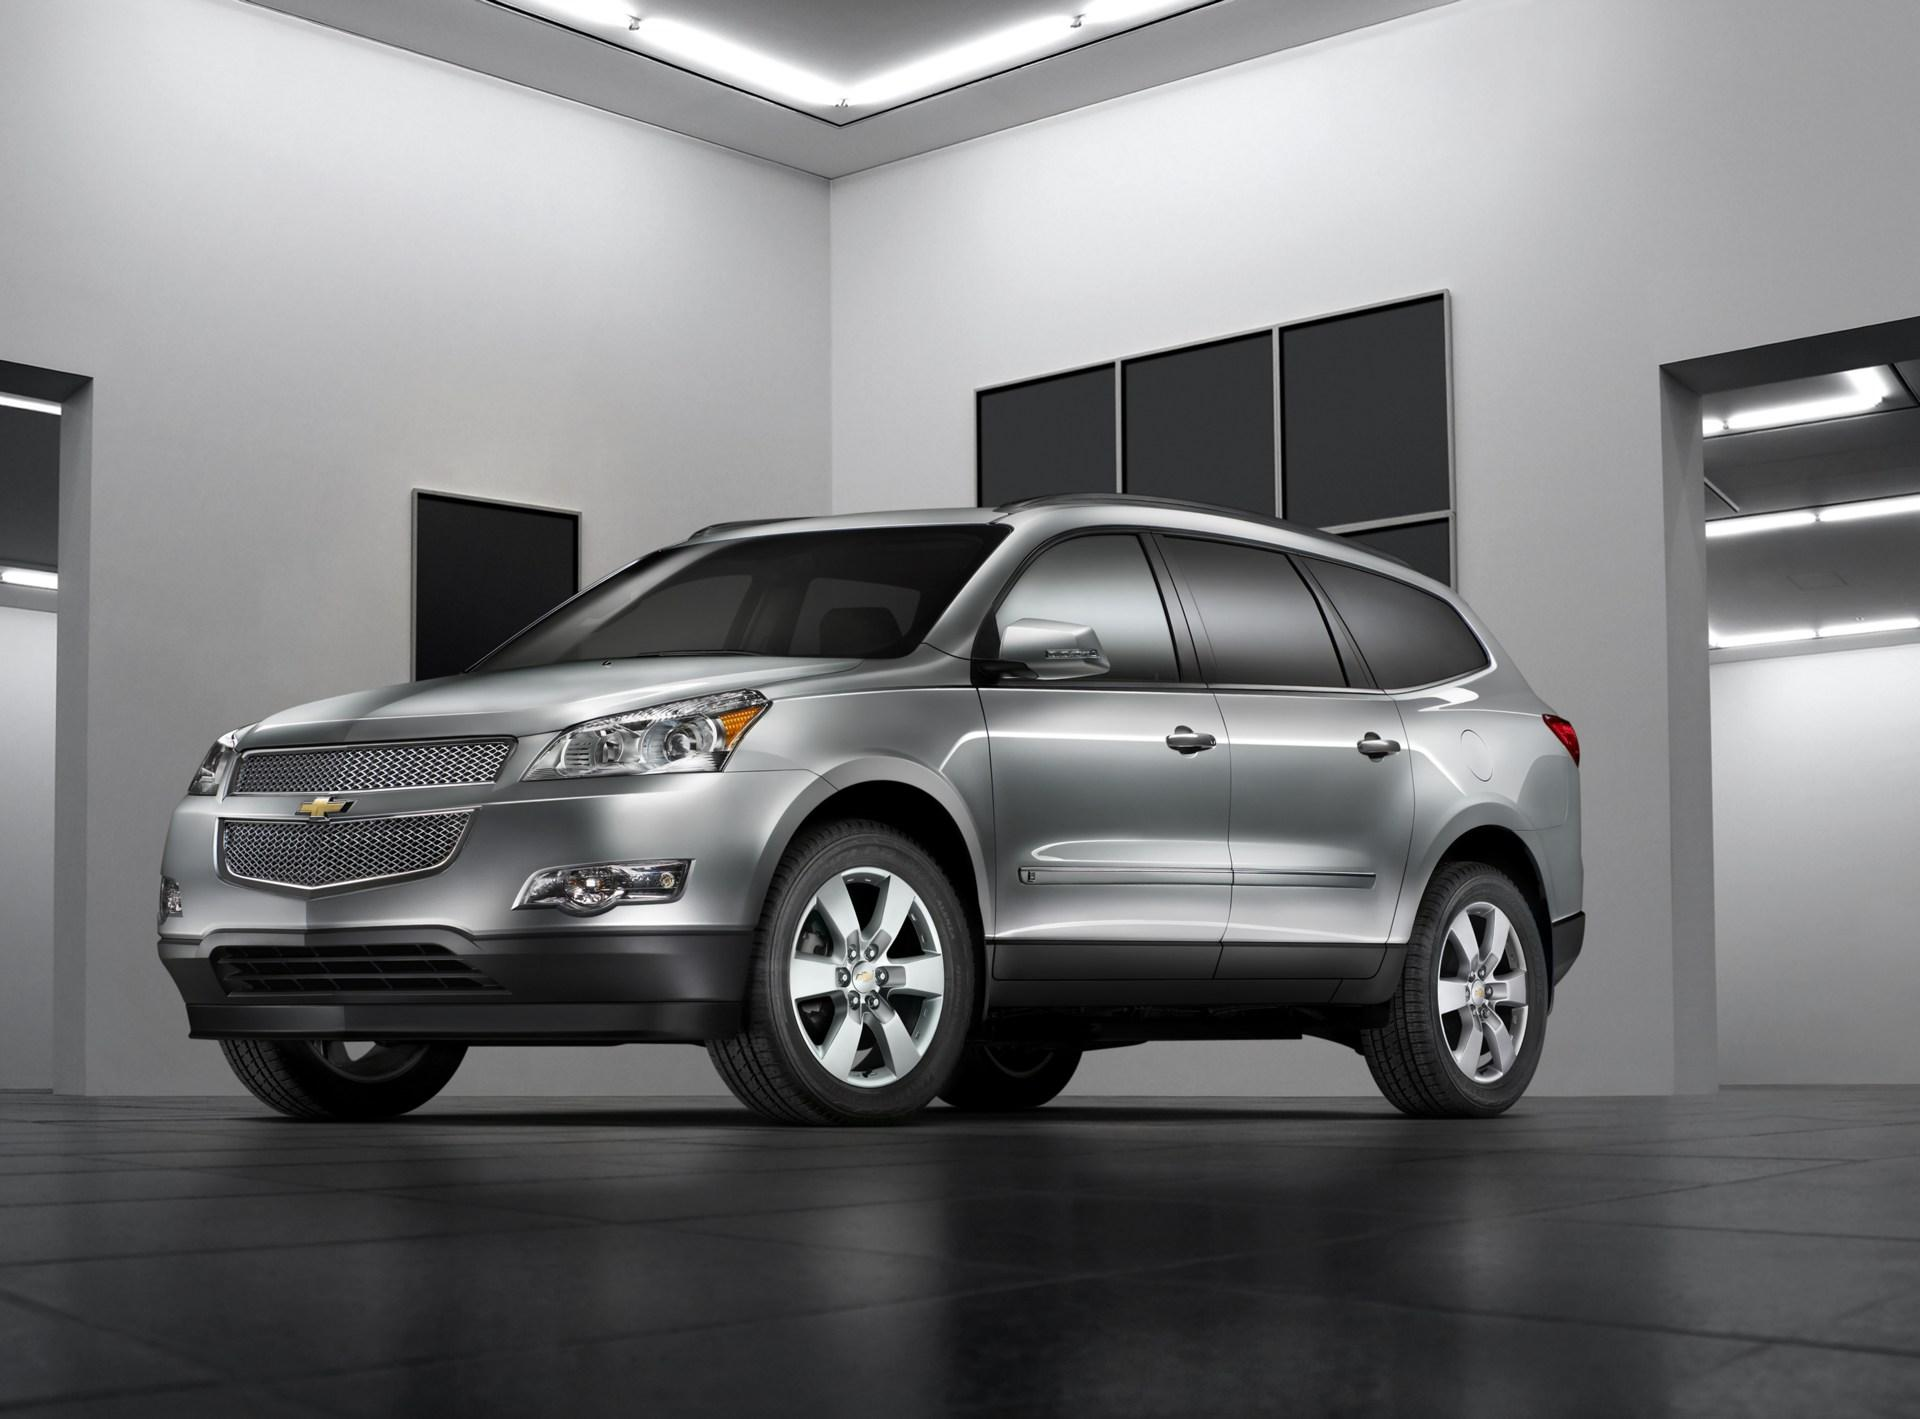 2008 Chevrolet Traverse News and Information